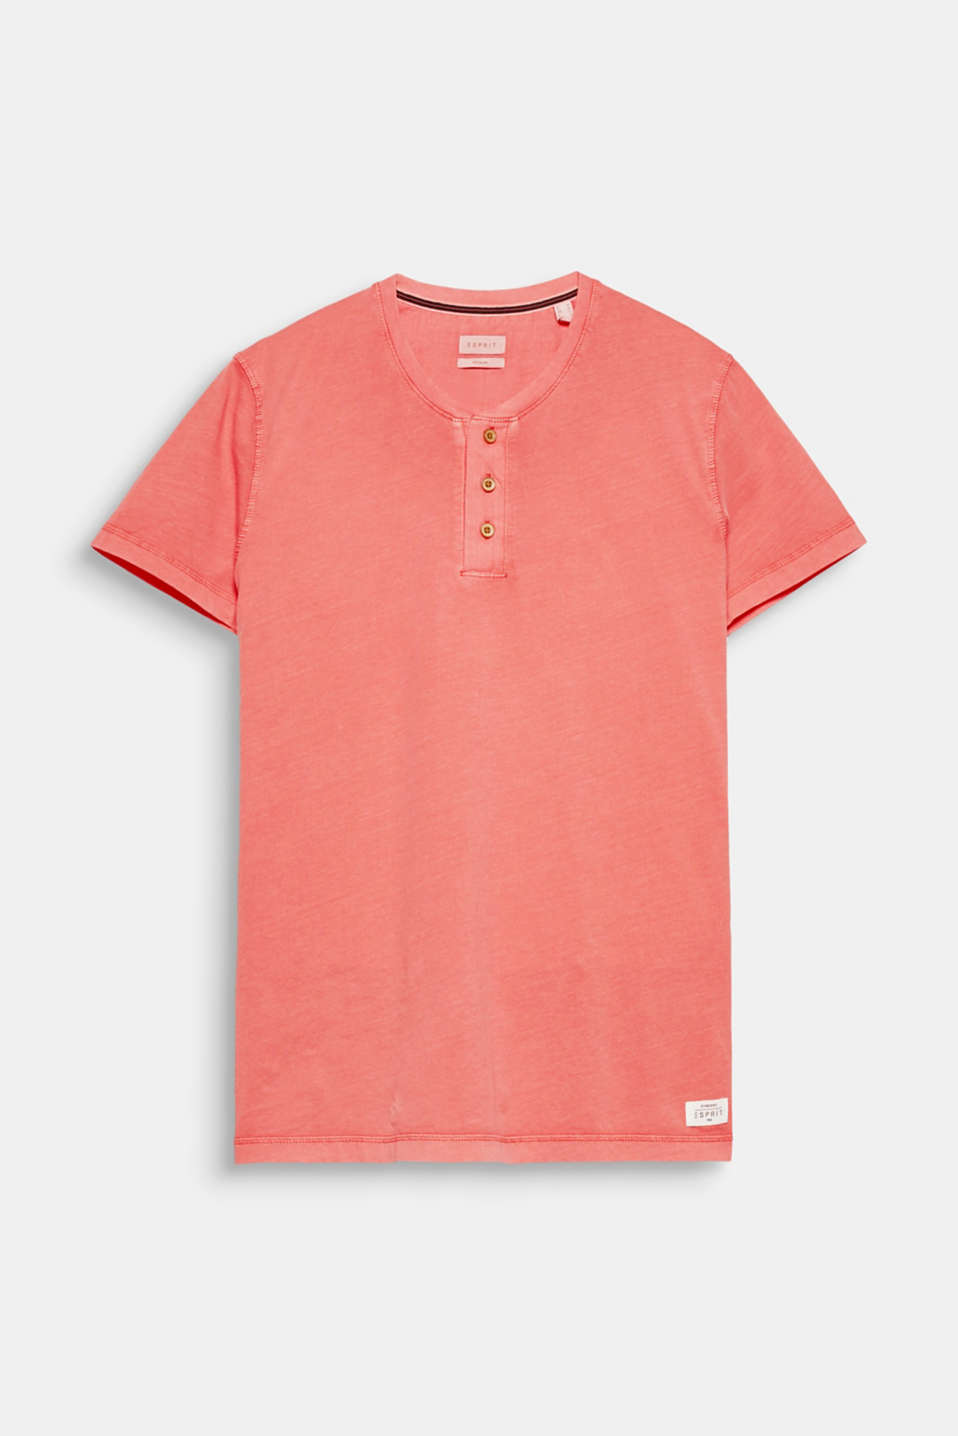 The slightly faded finish and Henley neckline give this T-shirt a seriously laid-back look.